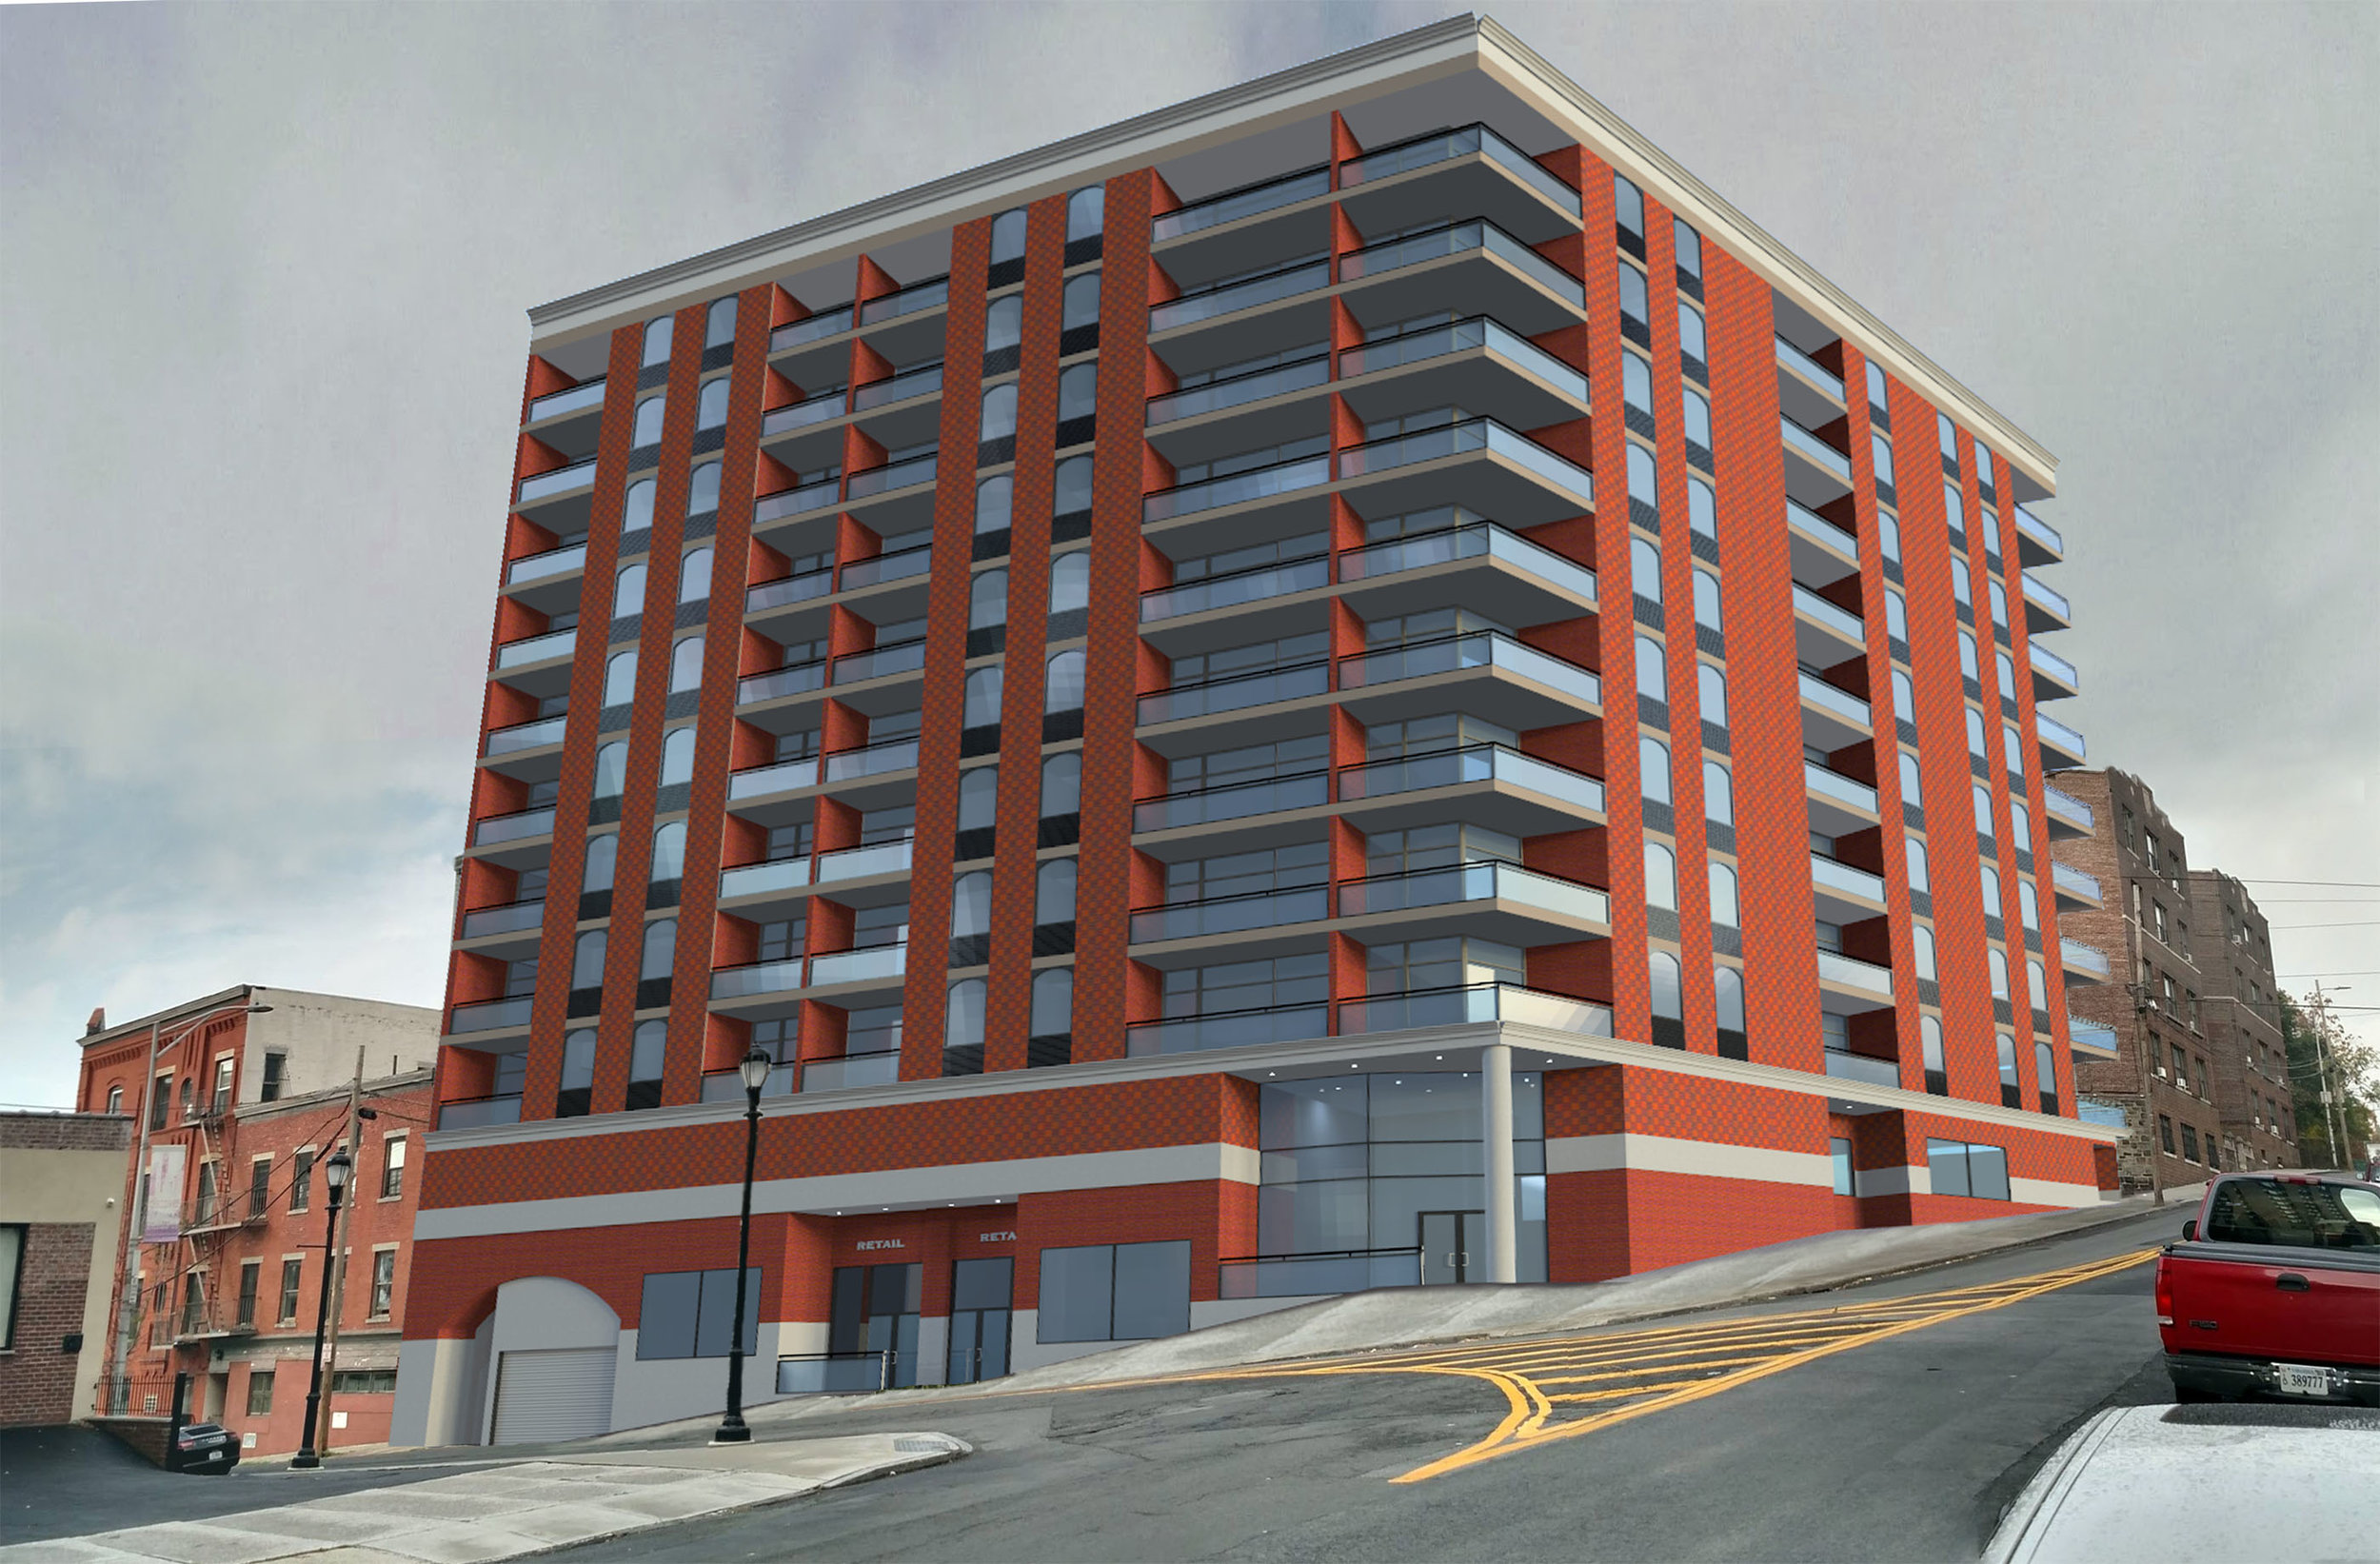 Proposed mixed use building in downtown Yonkers